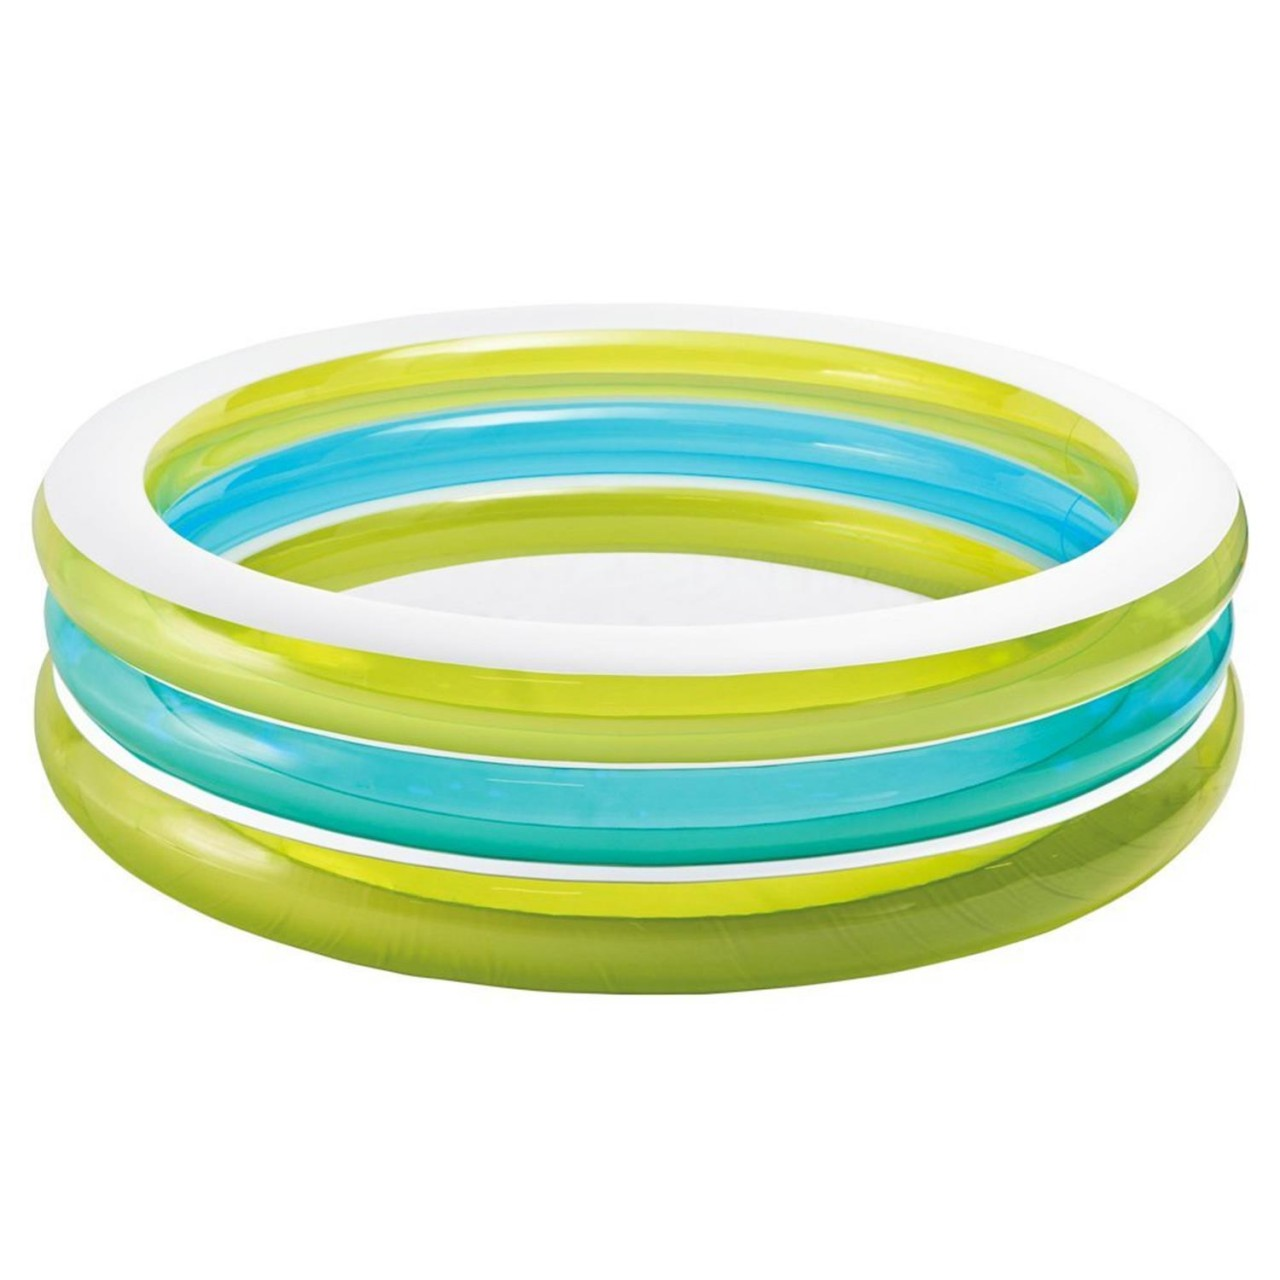 INTEX Swim Center 203x51cm See Trough Swimming Pool Planschbecken 57489